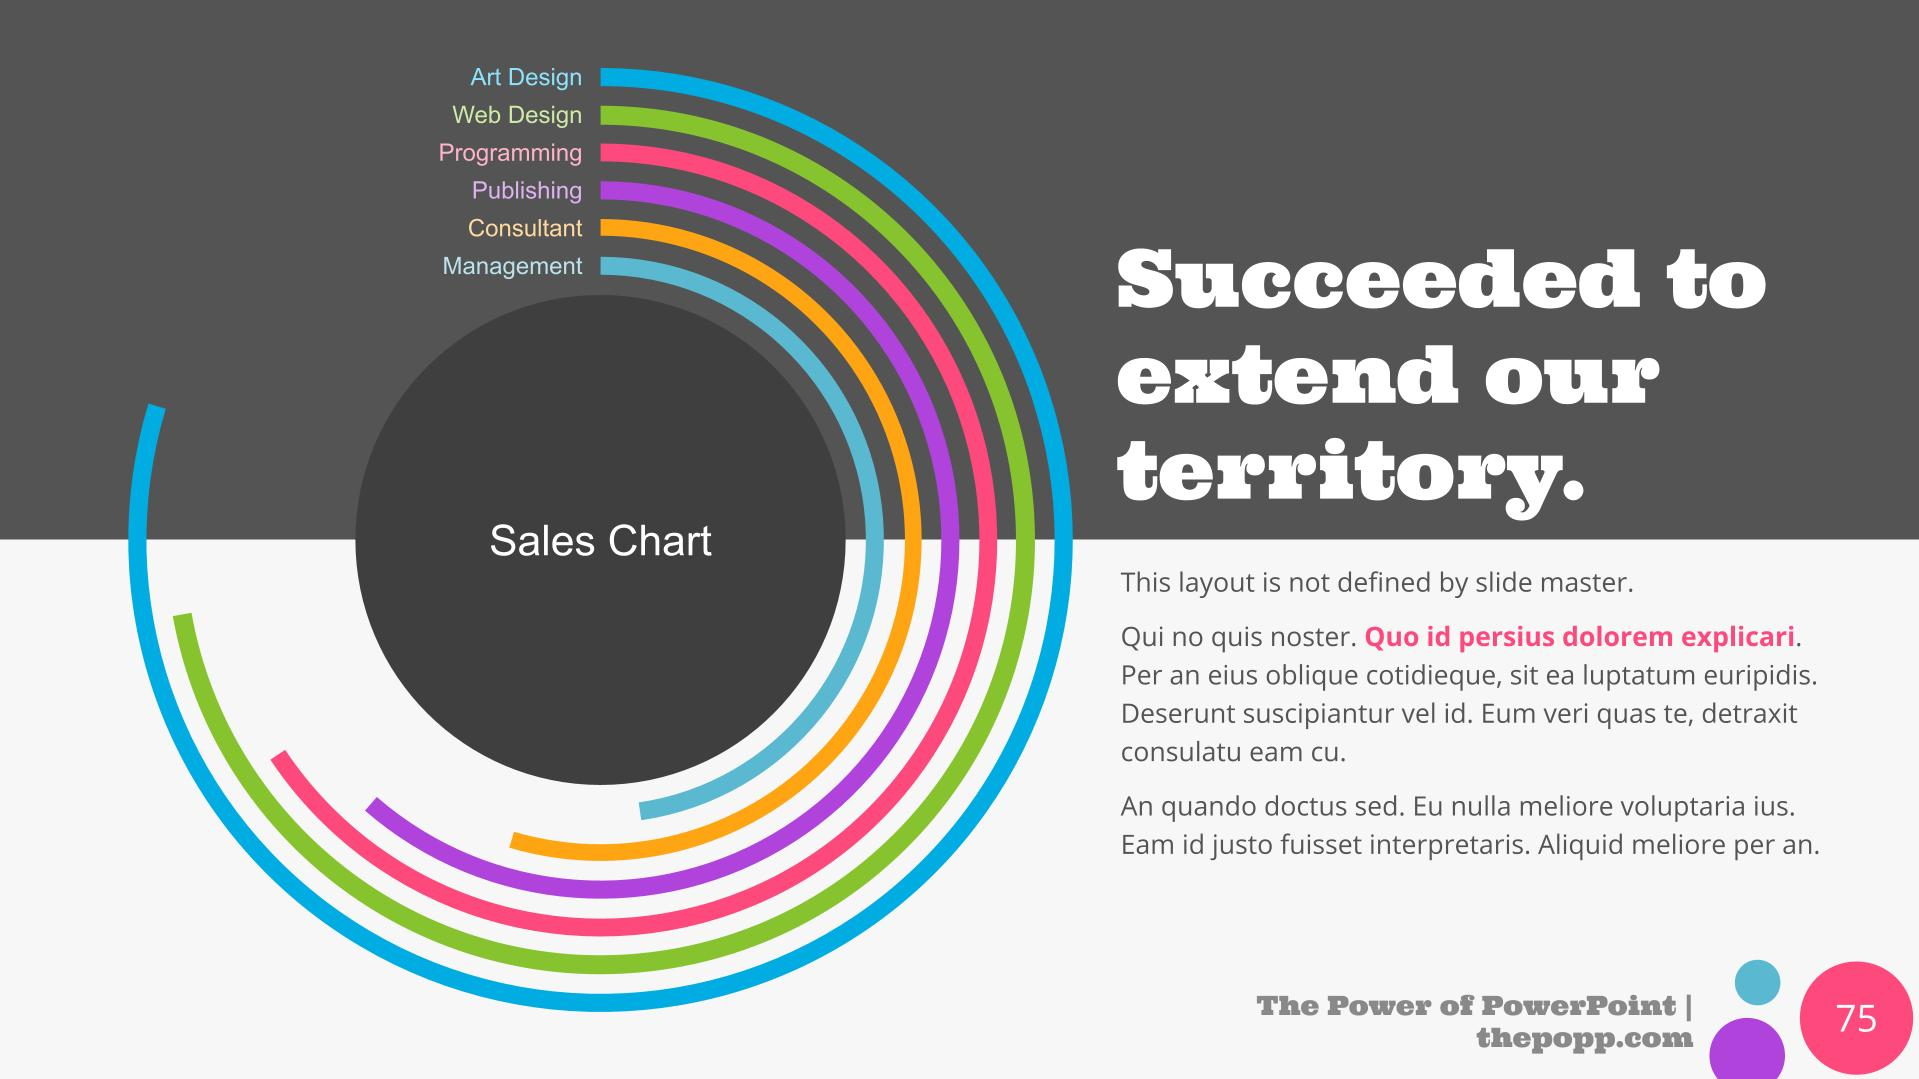 Gray and white background with colored circular infographics.